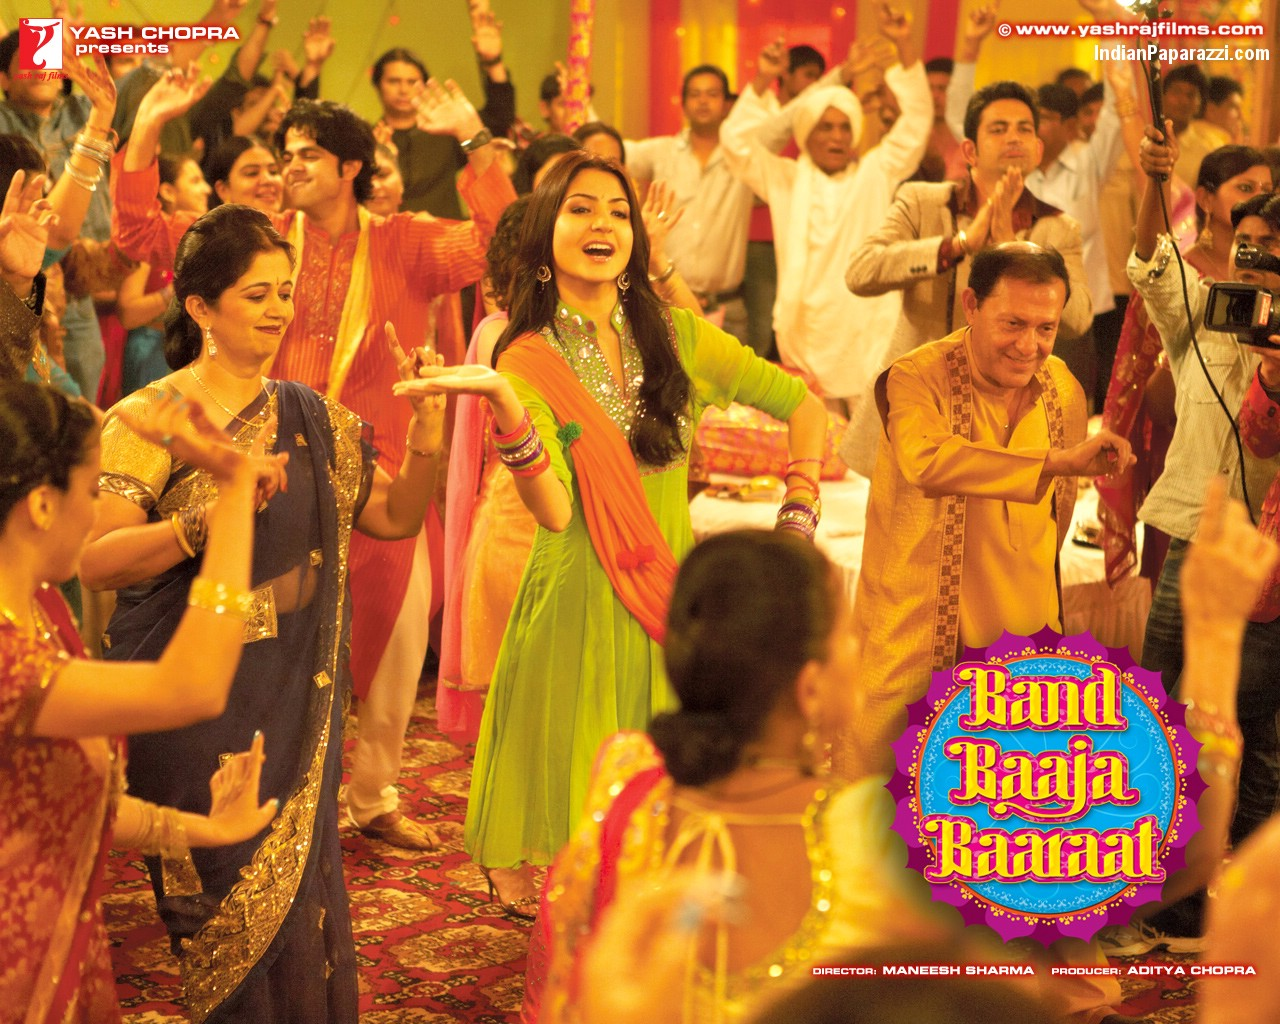 The Cast Of Film Is So Refreshing And Cheerfulit A Complete Paisa Vasool Movieand Indian Wedding Theme Can Hardly Go Wrong In Hindi Cinema